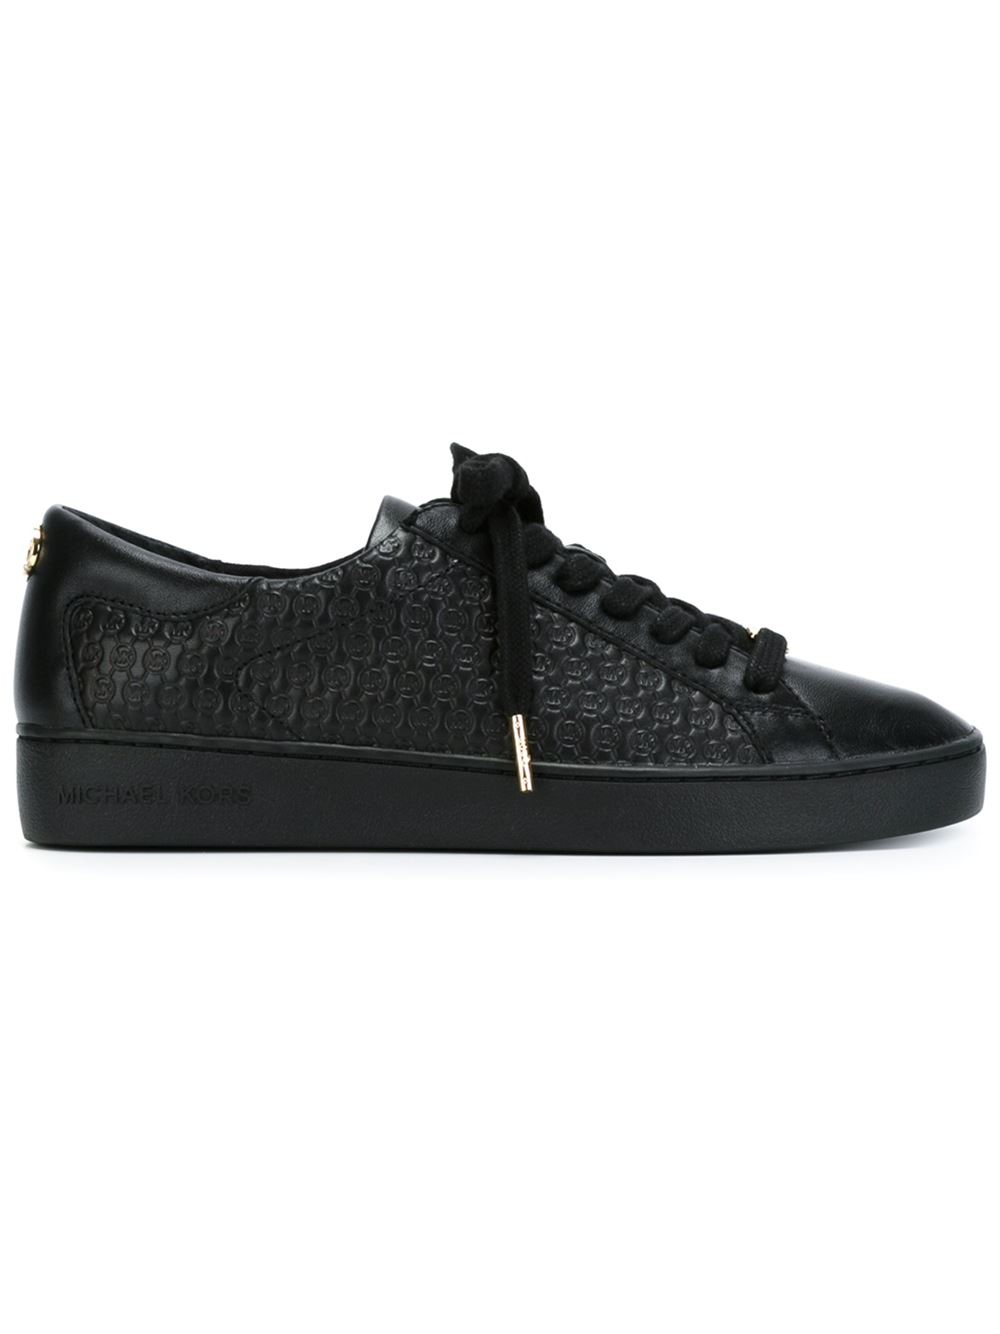 michael kors 39 breck 39 sneakers in black lyst. Black Bedroom Furniture Sets. Home Design Ideas